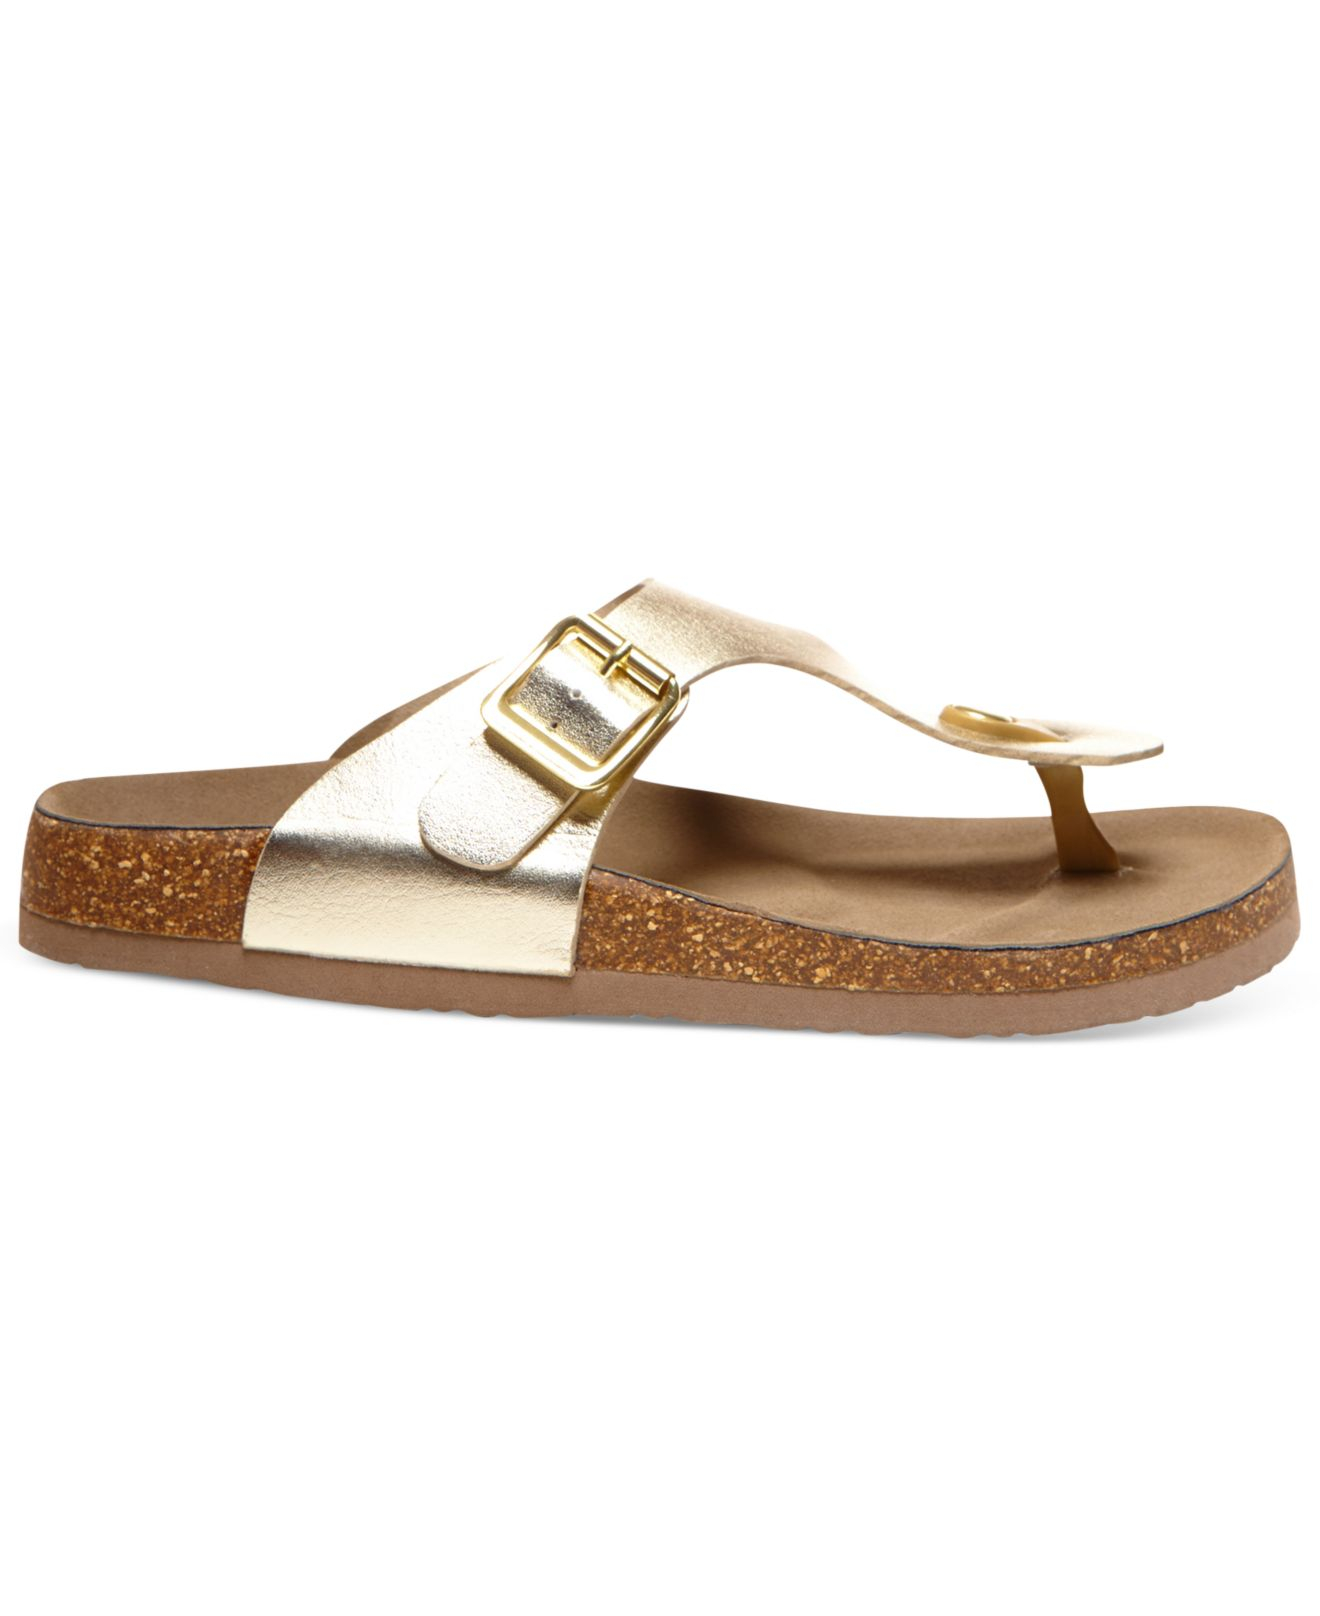 3030e1c1c068 Lyst - Madden Girl Boise Footbed Thong Sandals in Metallic